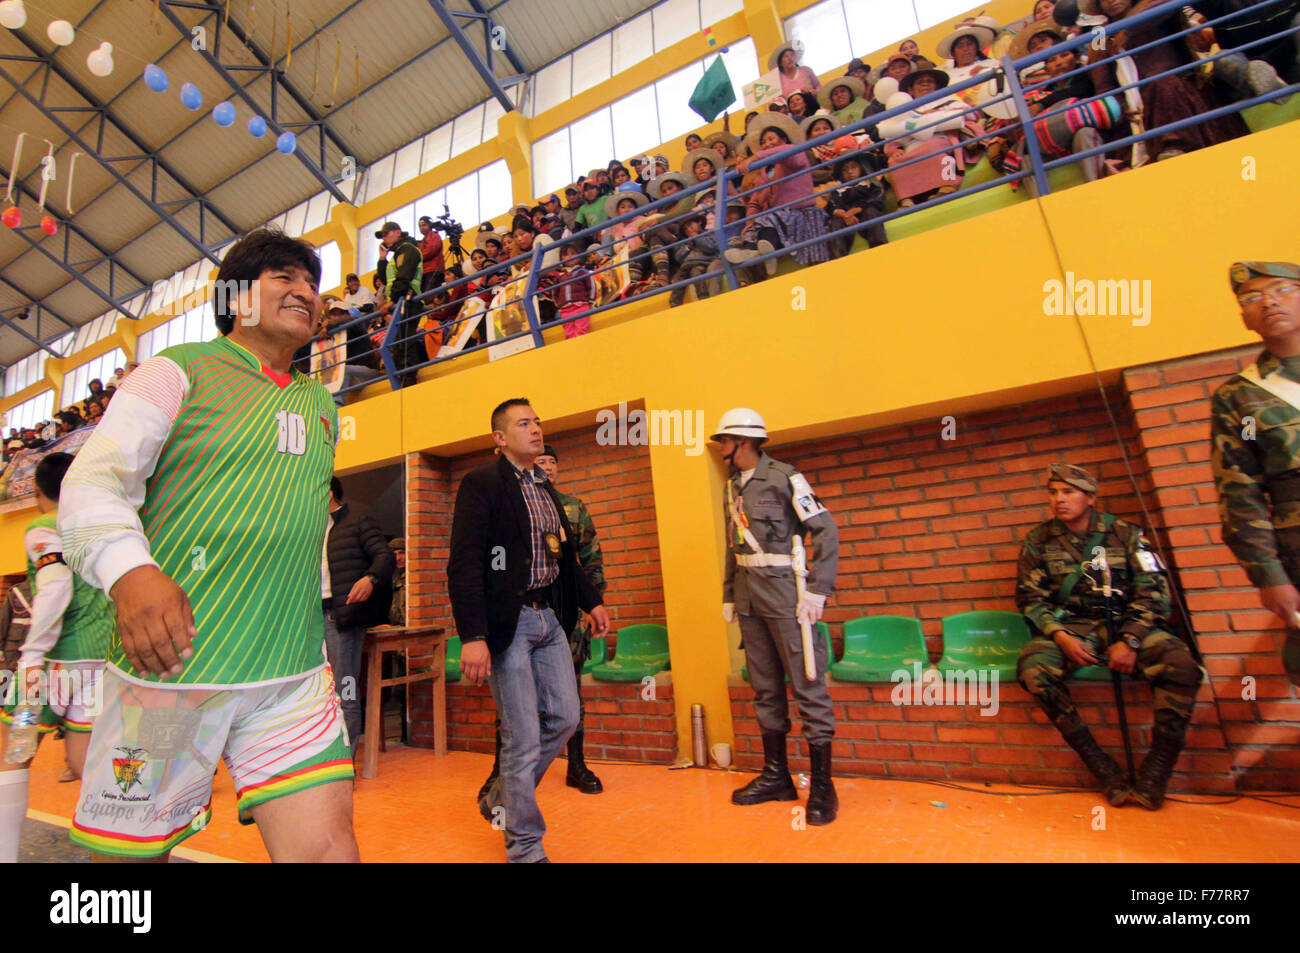 Oruro, Bolivia. 26th Nov, 2015. Bolivia's President Evo Morales (L) takes part in a soccer match during the handover Stock Photo